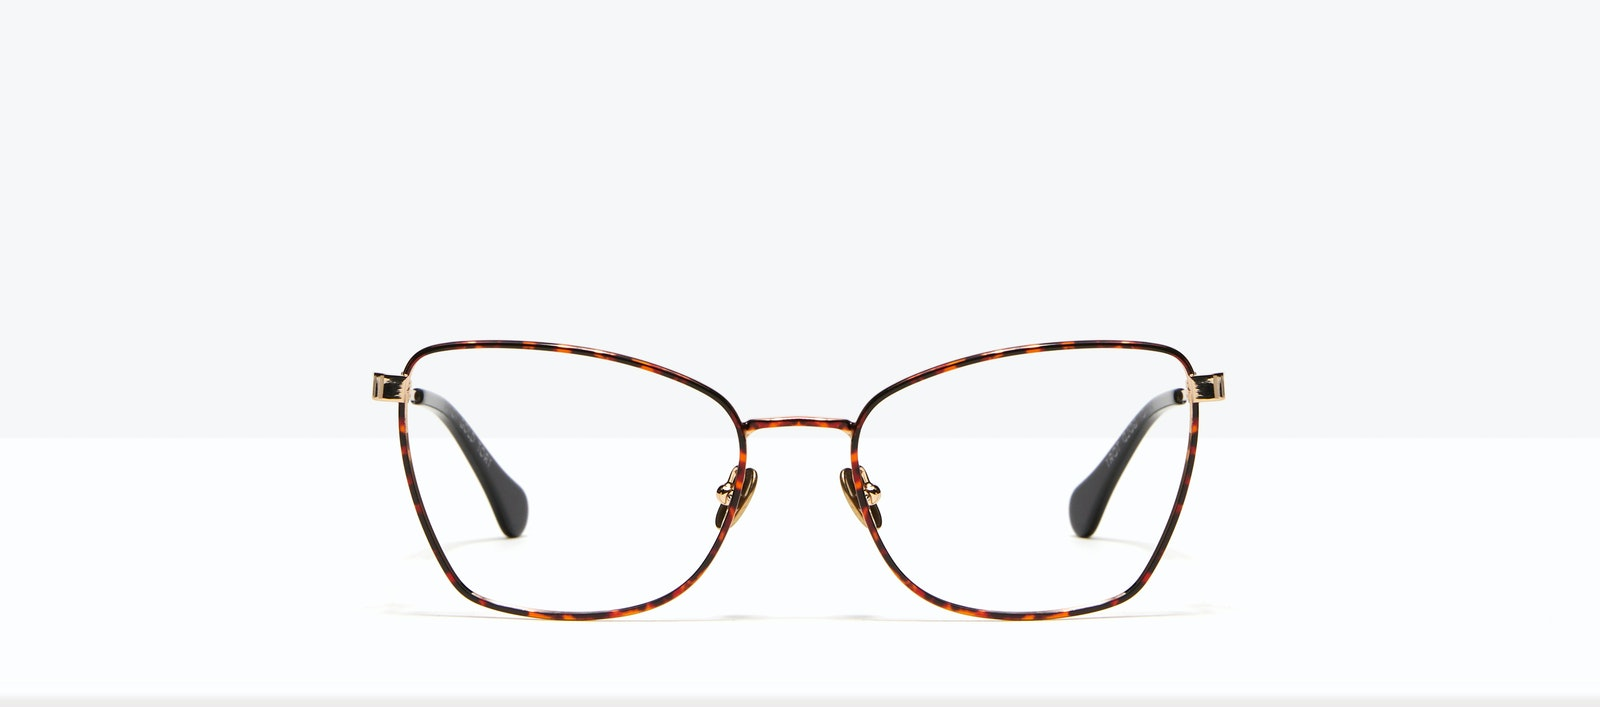 Affordable Fashion Glasses Cat Eye Eyeglasses Women Fancy Gold Tort Front